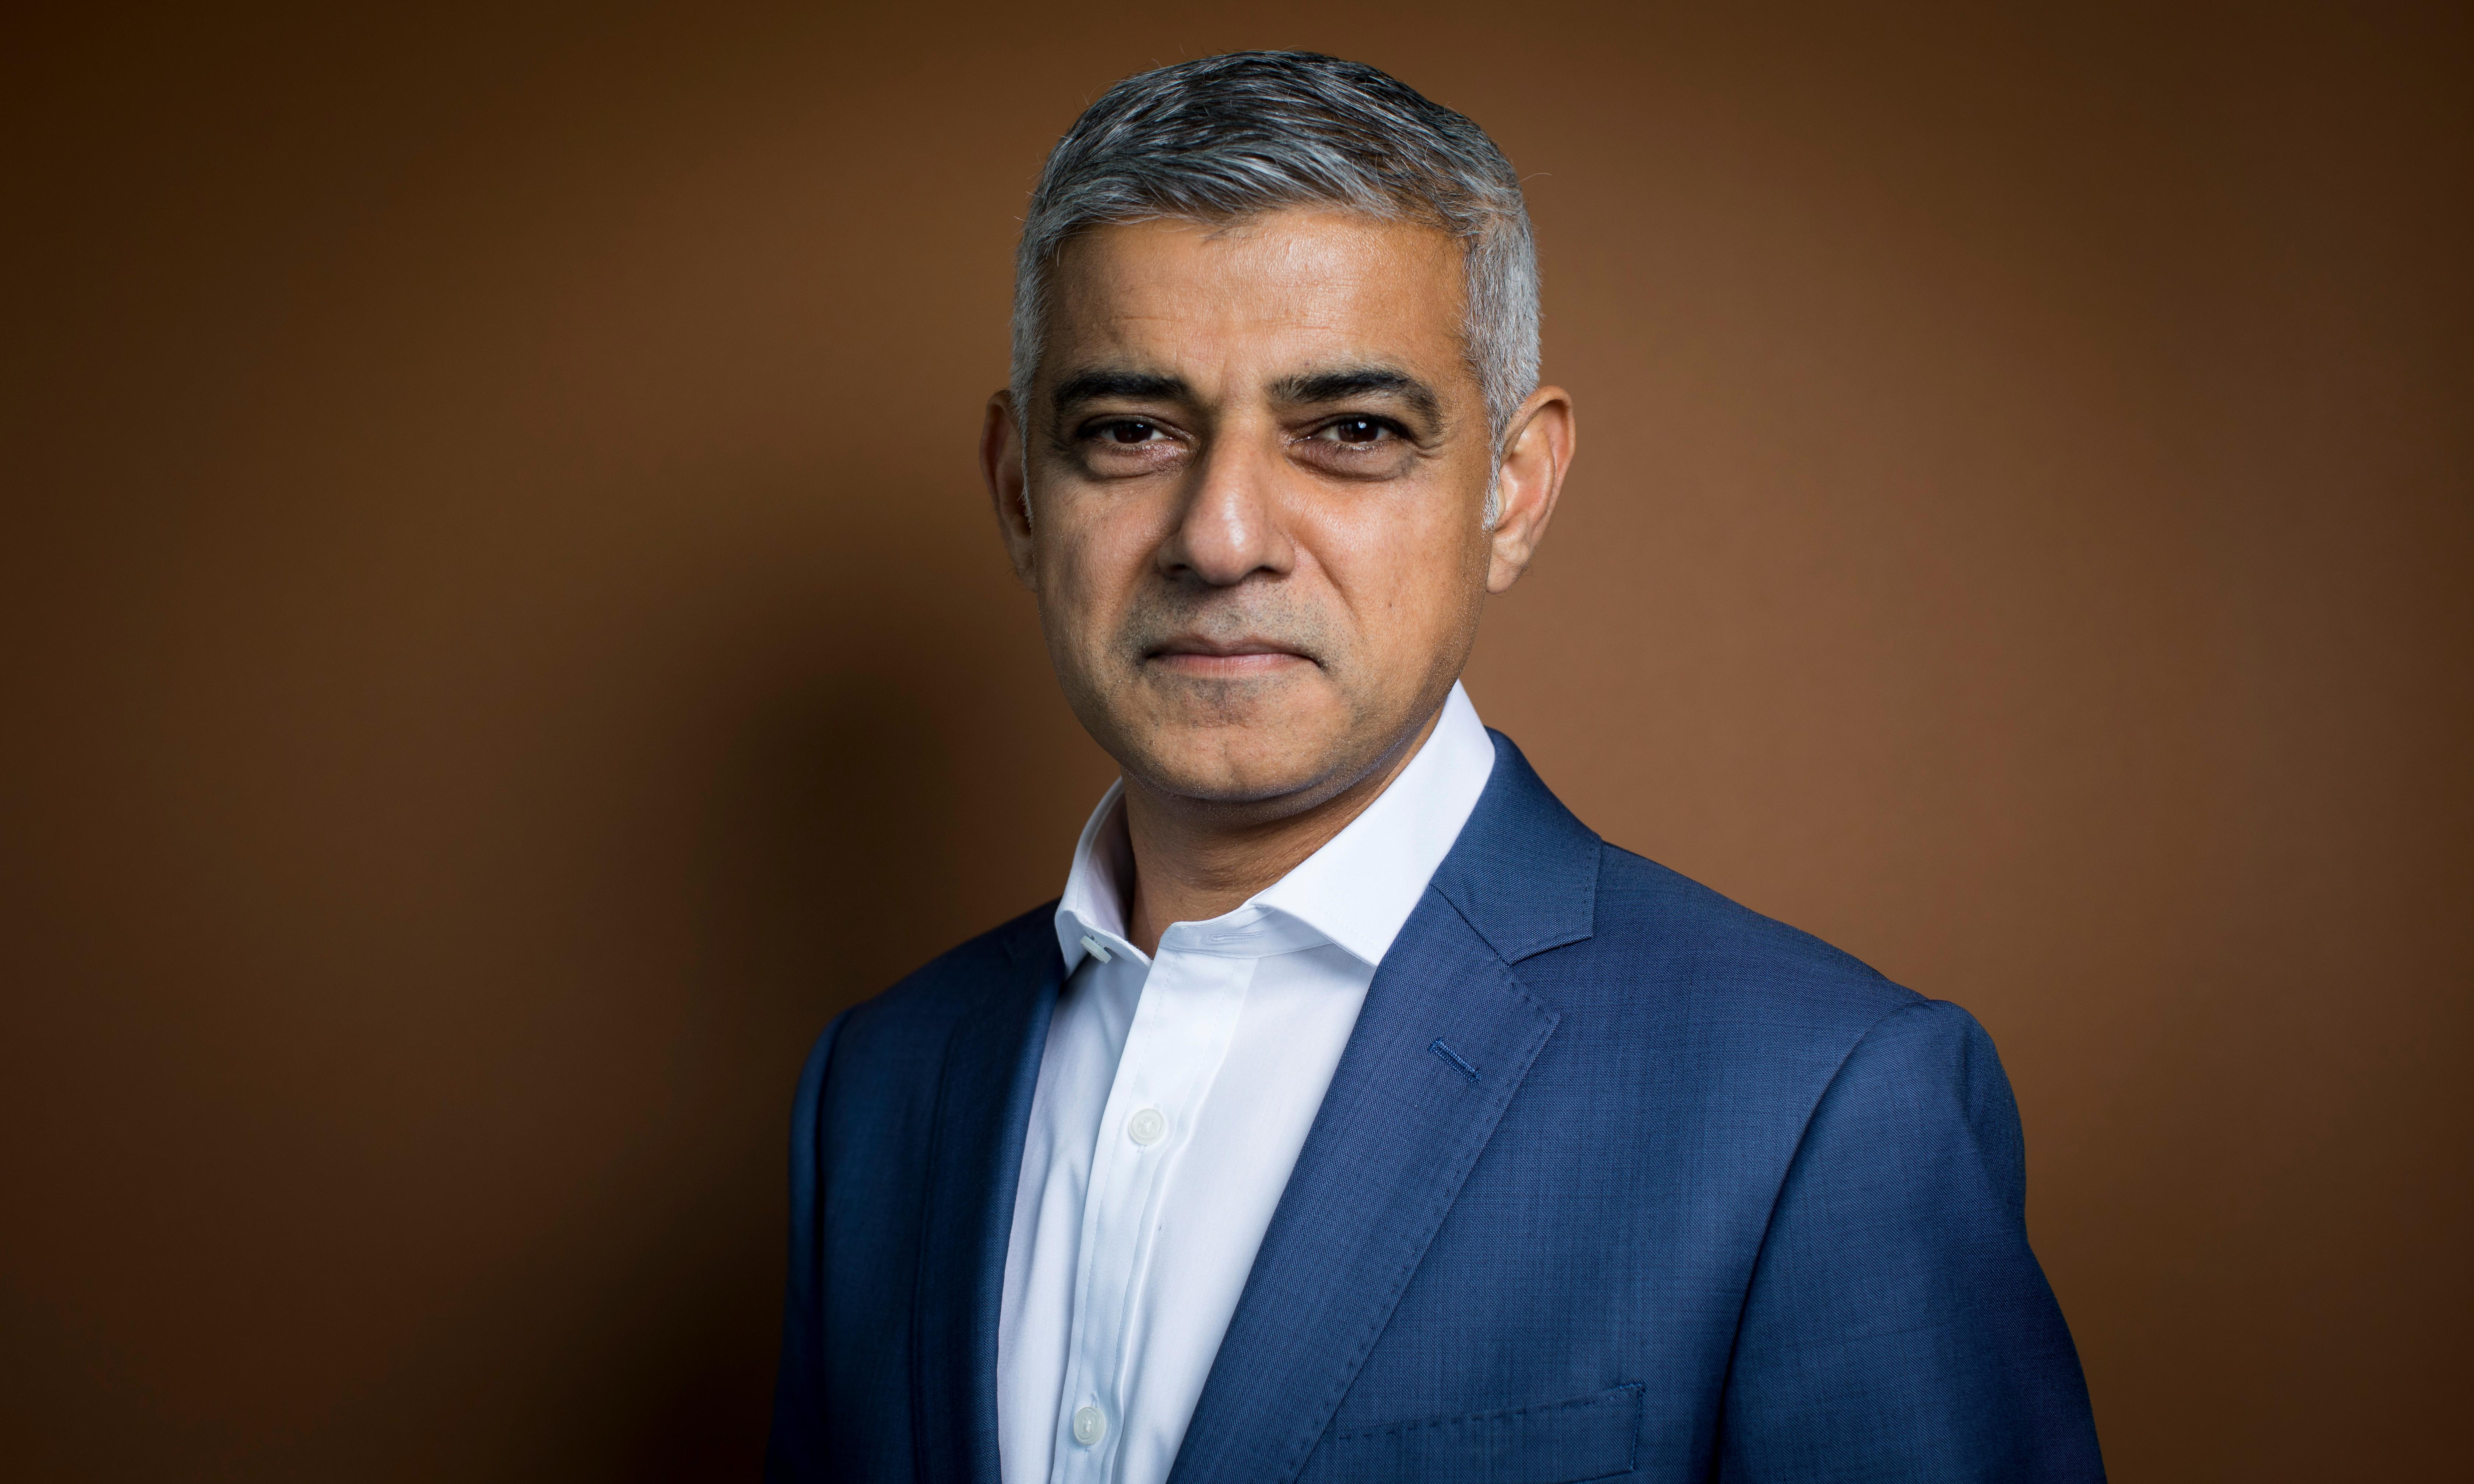 Sadiq Khan to fight government attempt to water down green policies